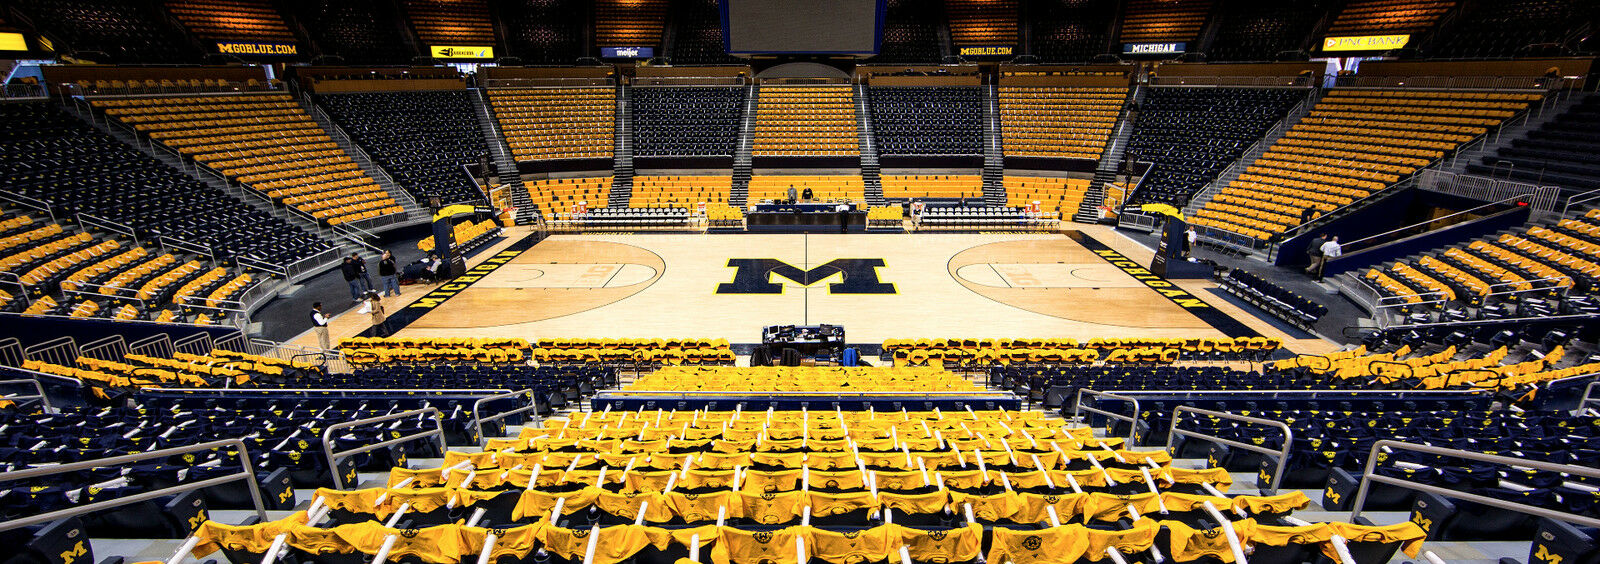 university of michigan basketball tickets, michigan wolverines